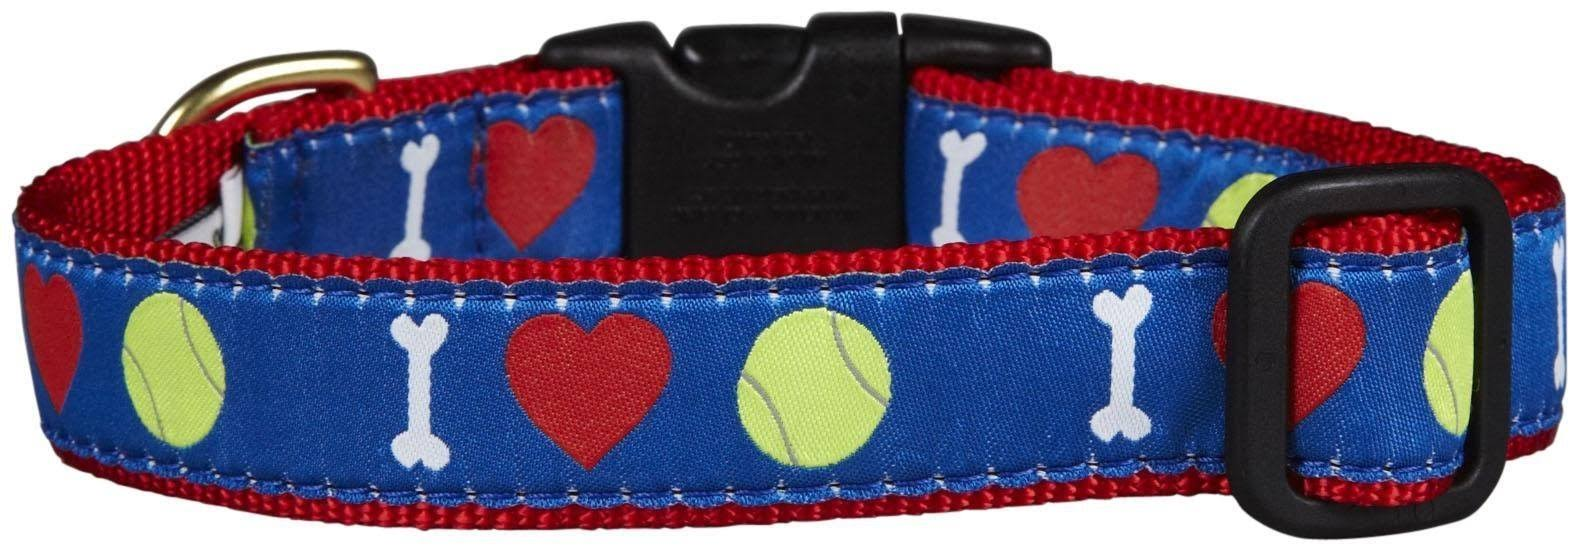 Up Country Tennis Ball Dog Collar - Blue and Red